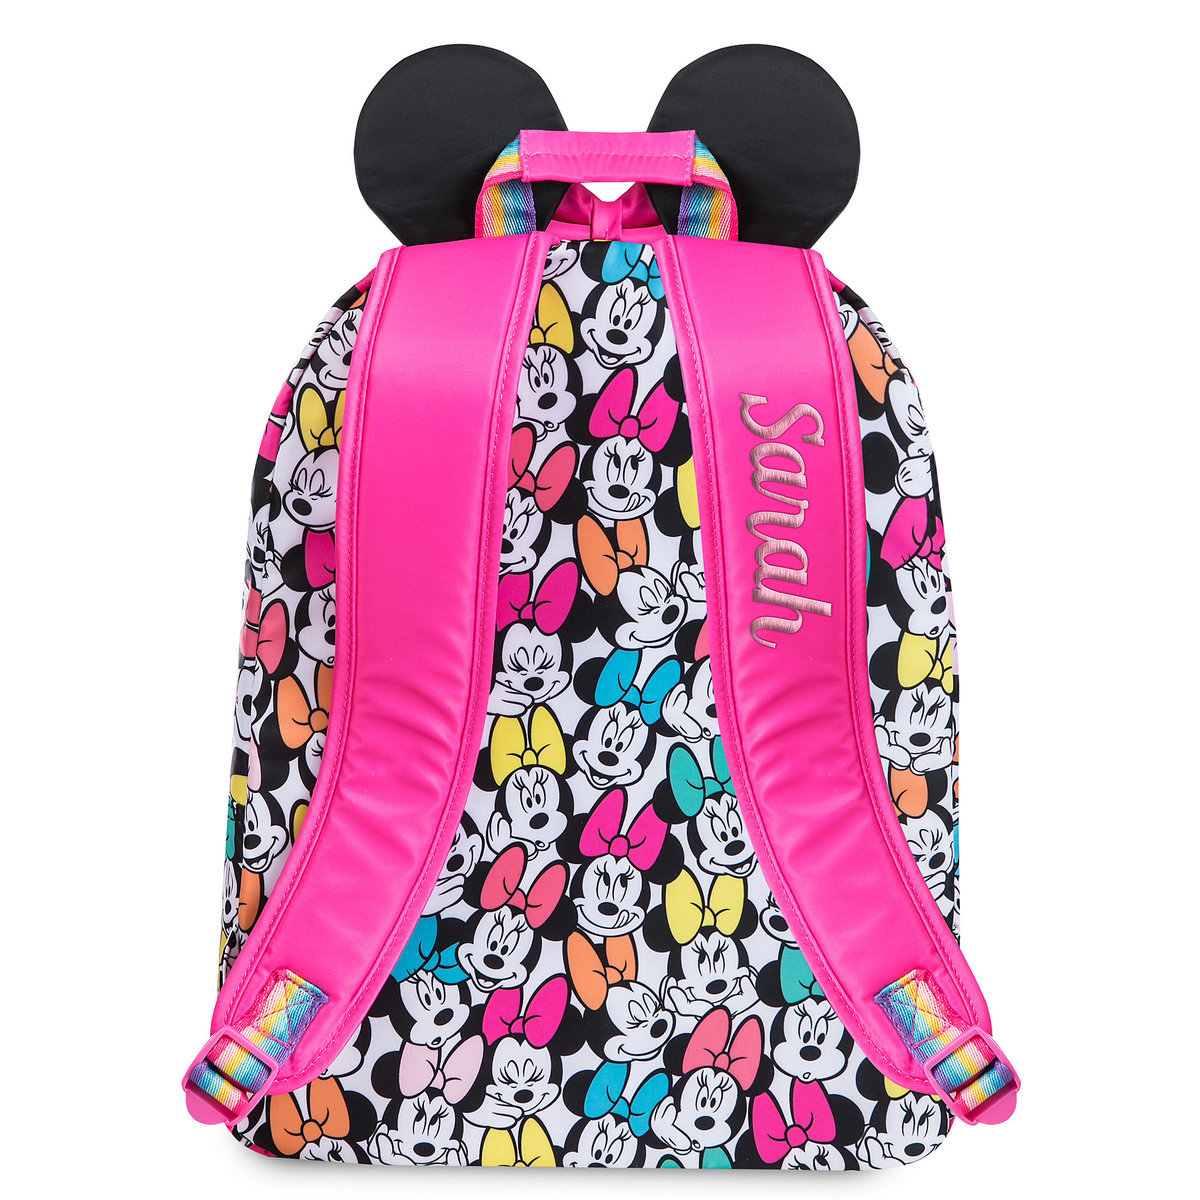 fc80f7de562 Product Image of Minnie Mouse Rainbow Backpack - Personalizable   3